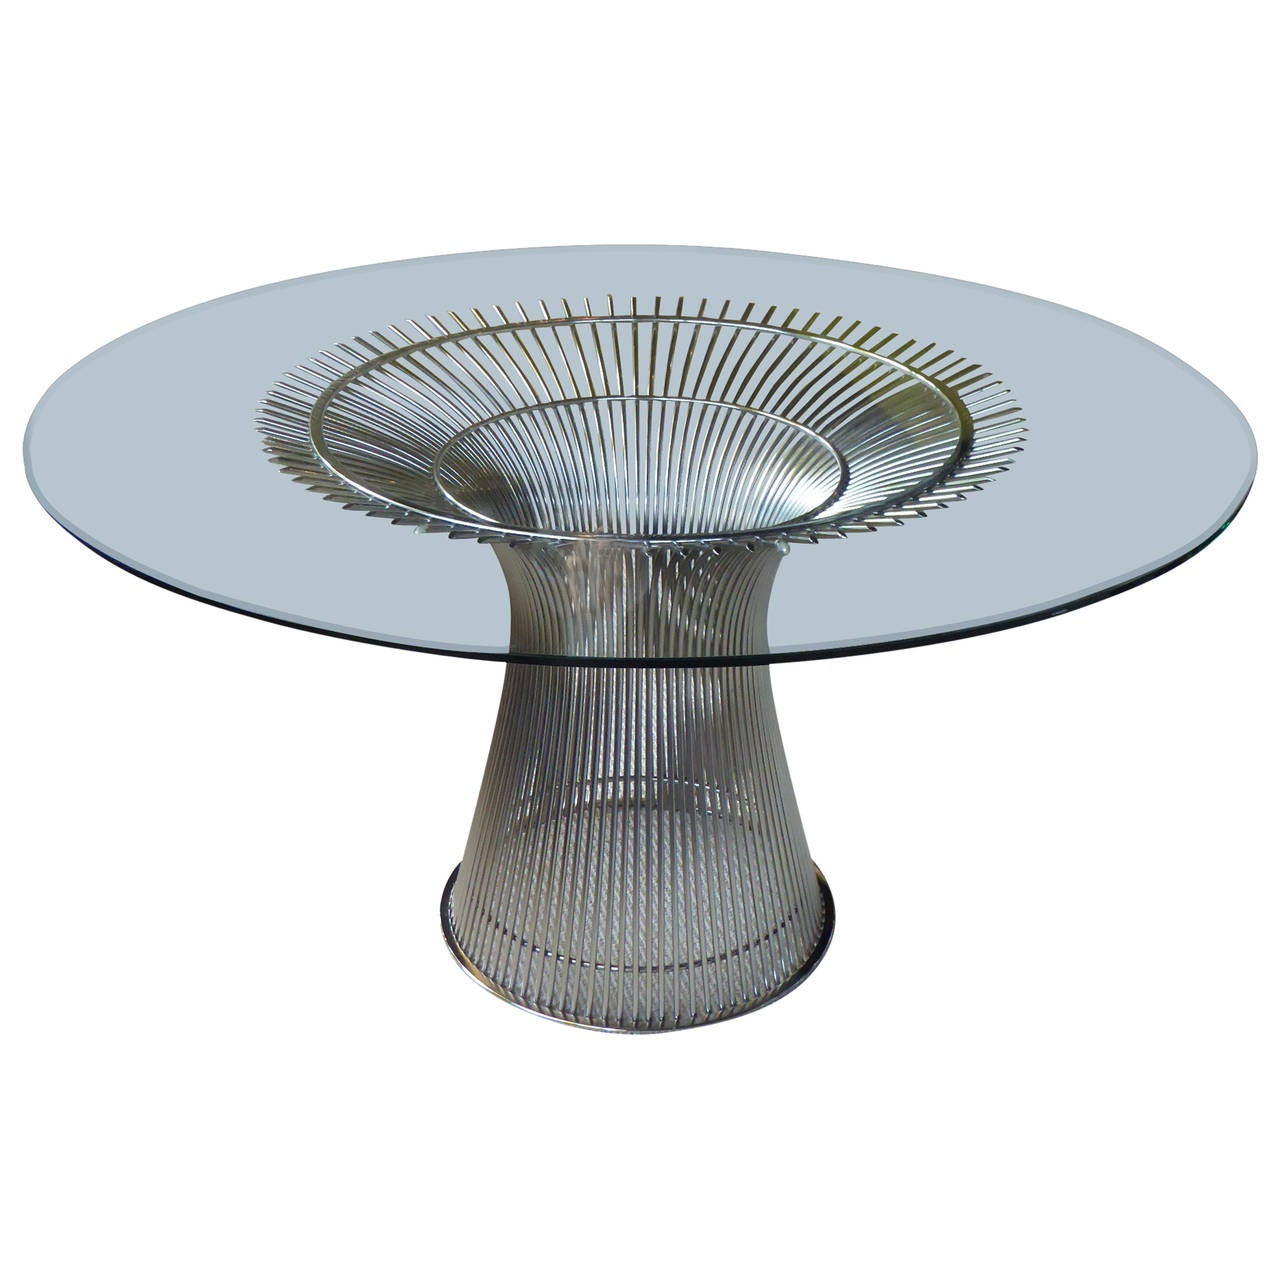 Warren Platner Dining Table 1966 Design for Knoll at 1stdibs : 3120272l from www.1stdibs.com size 1280 x 1280 jpeg 116kB